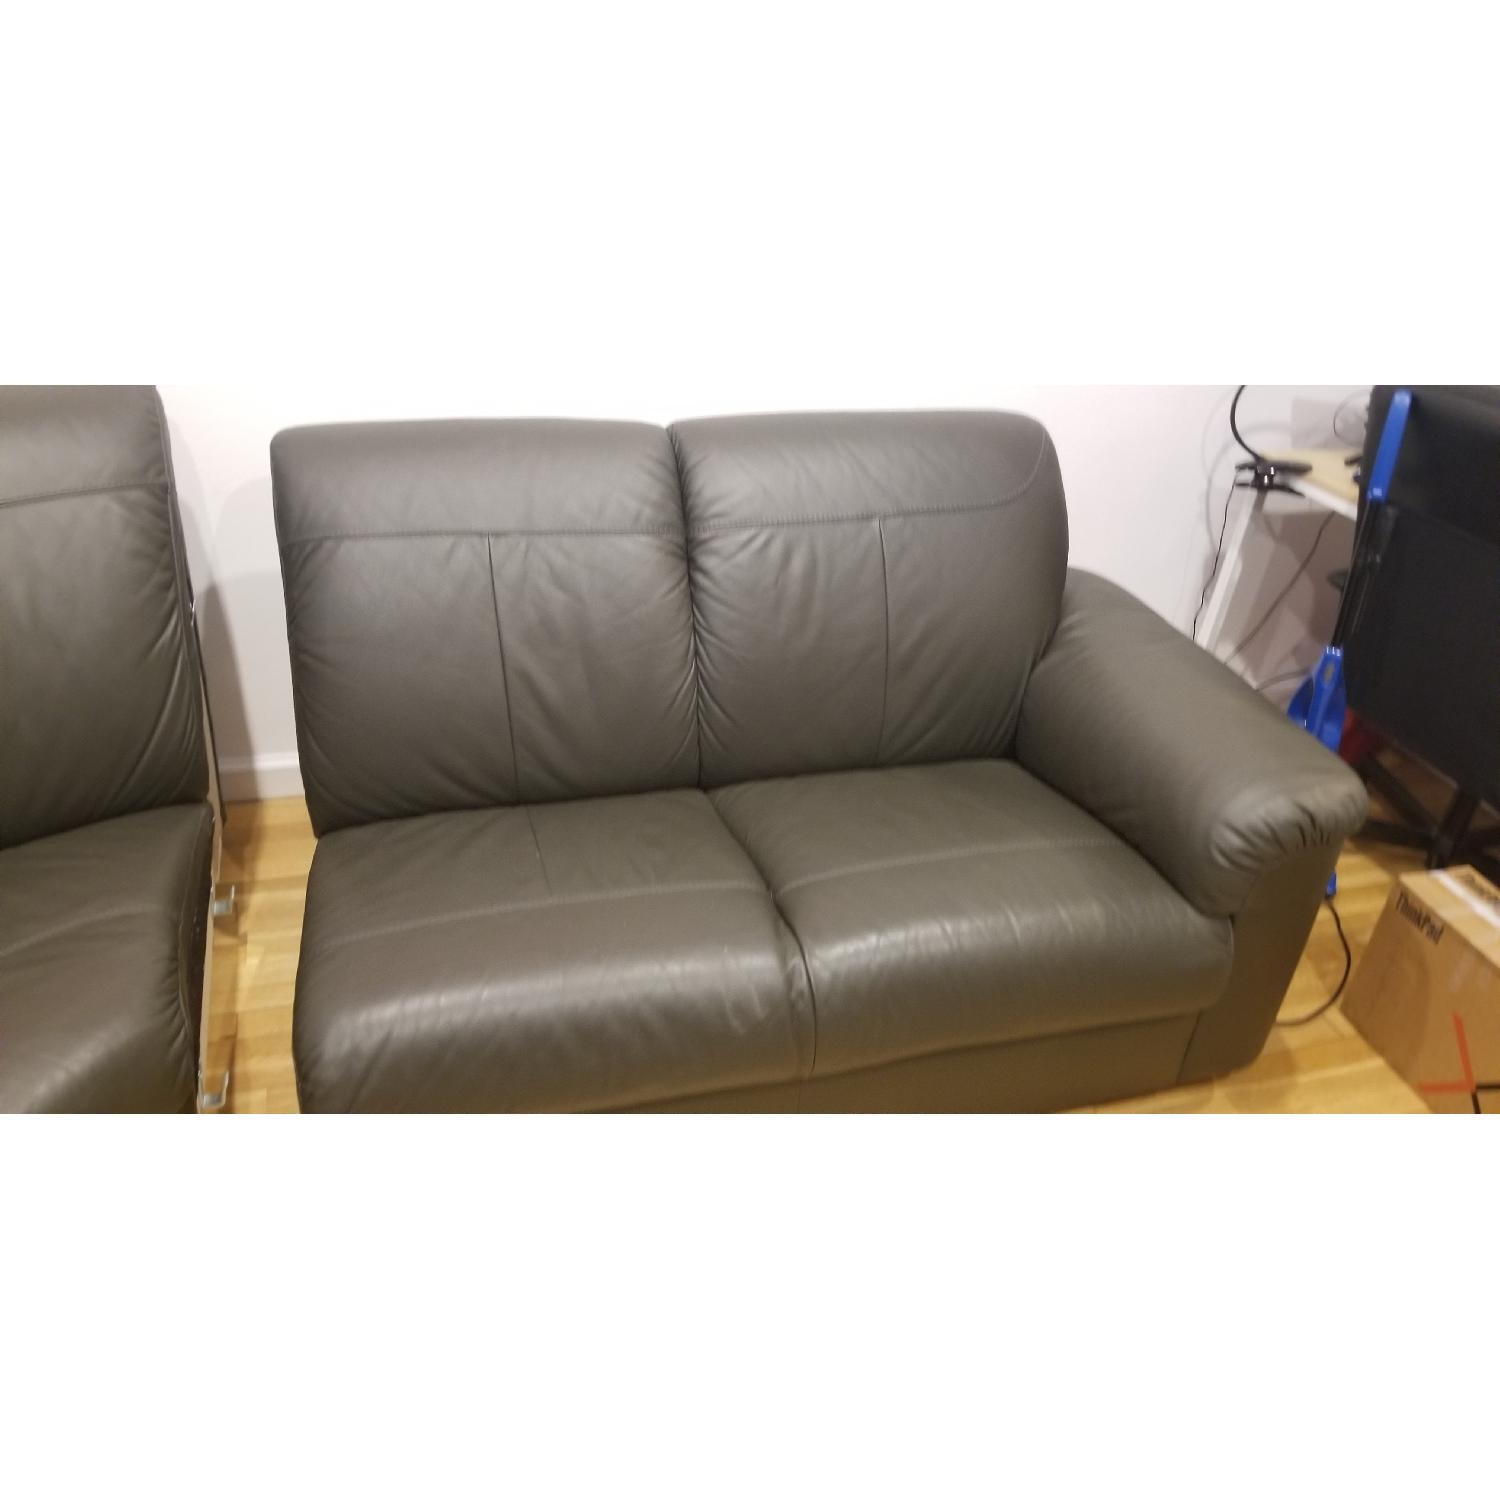 Ikea Timsfors Faux Leather Sectional Sofa - image-11